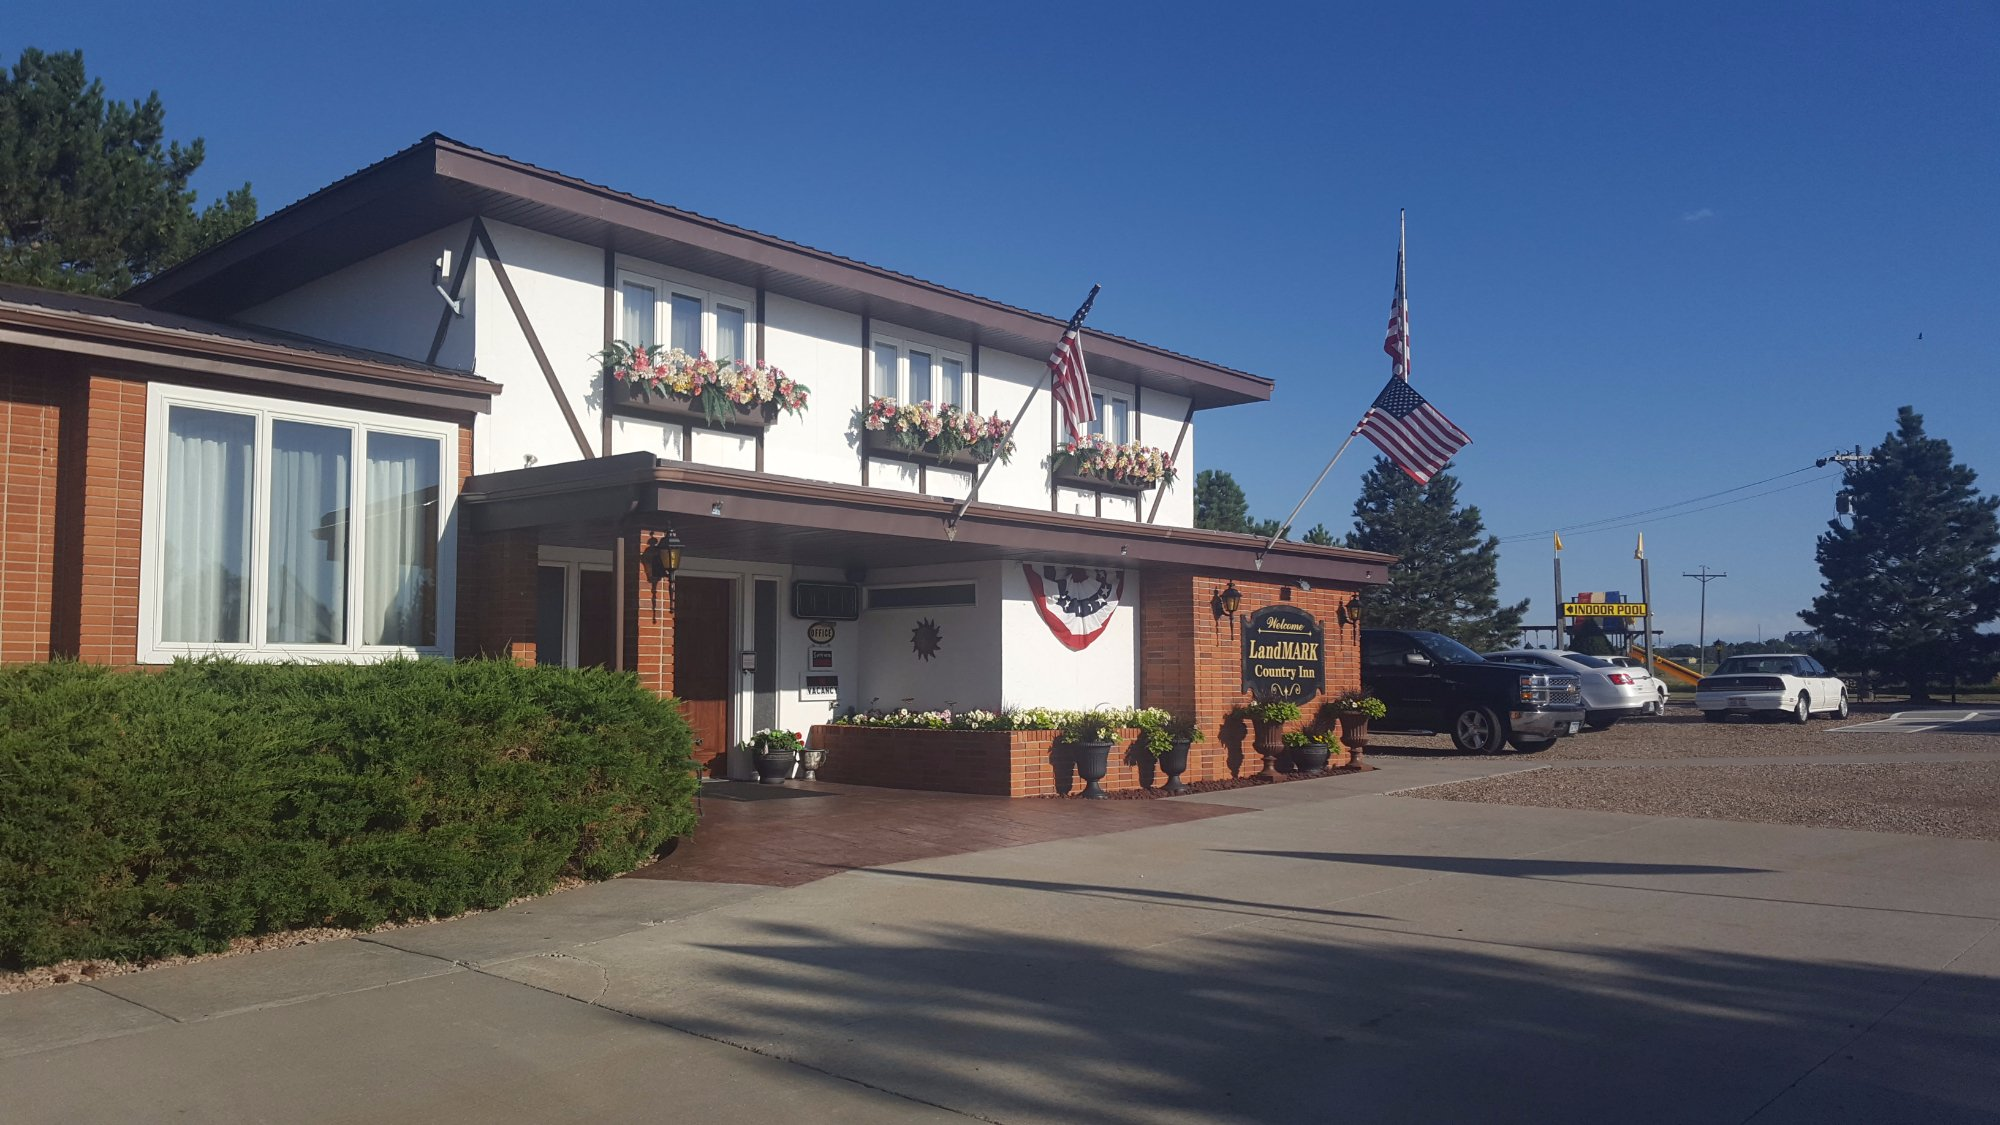 LandMARK Country Inn